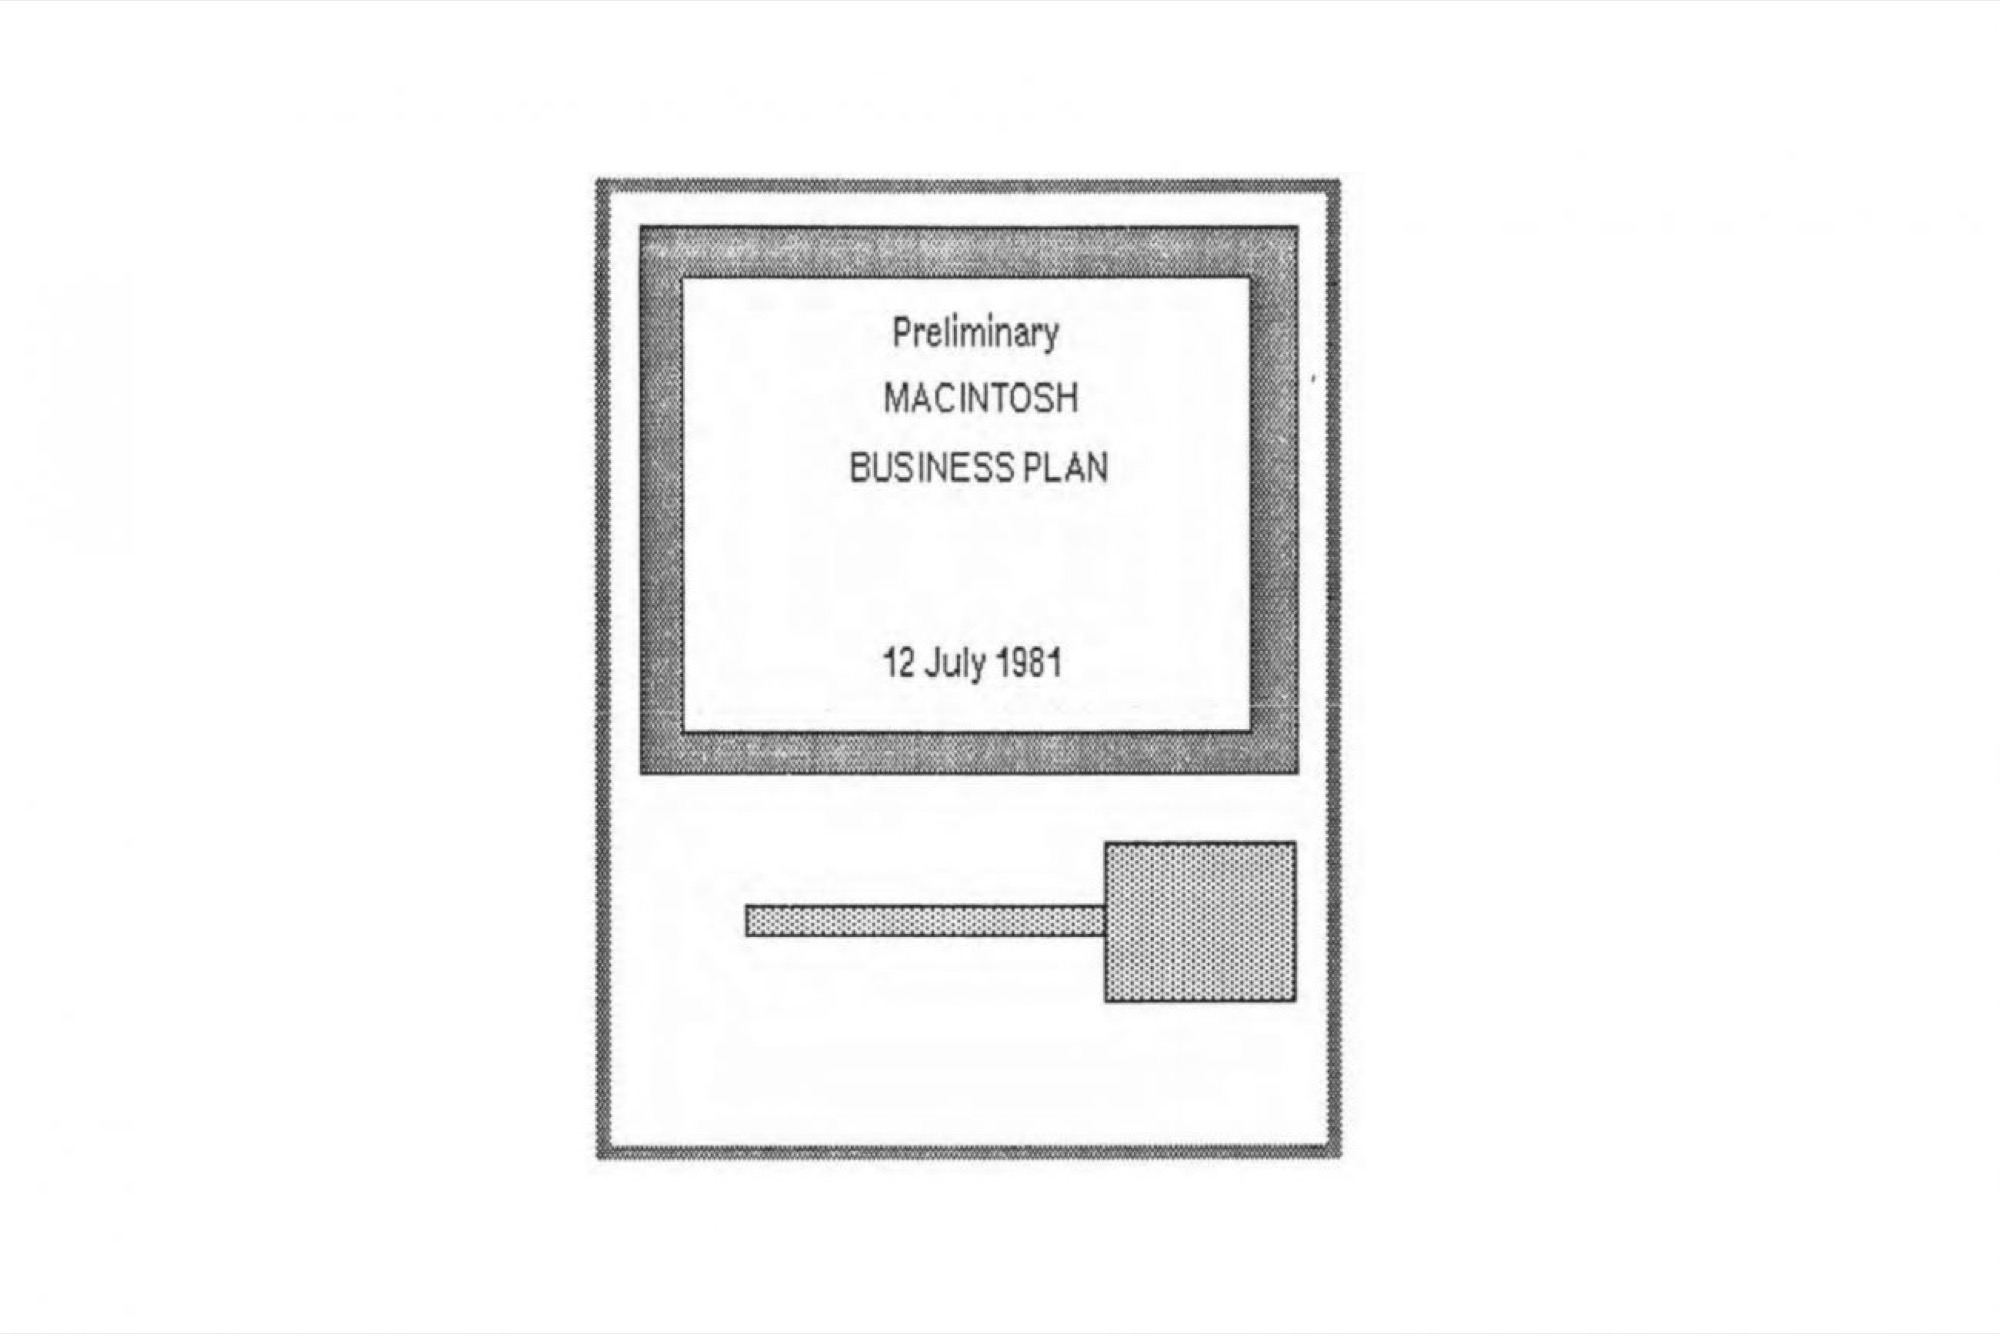 Need a Business Plan Template? Here Is Apple's 1981 Plan